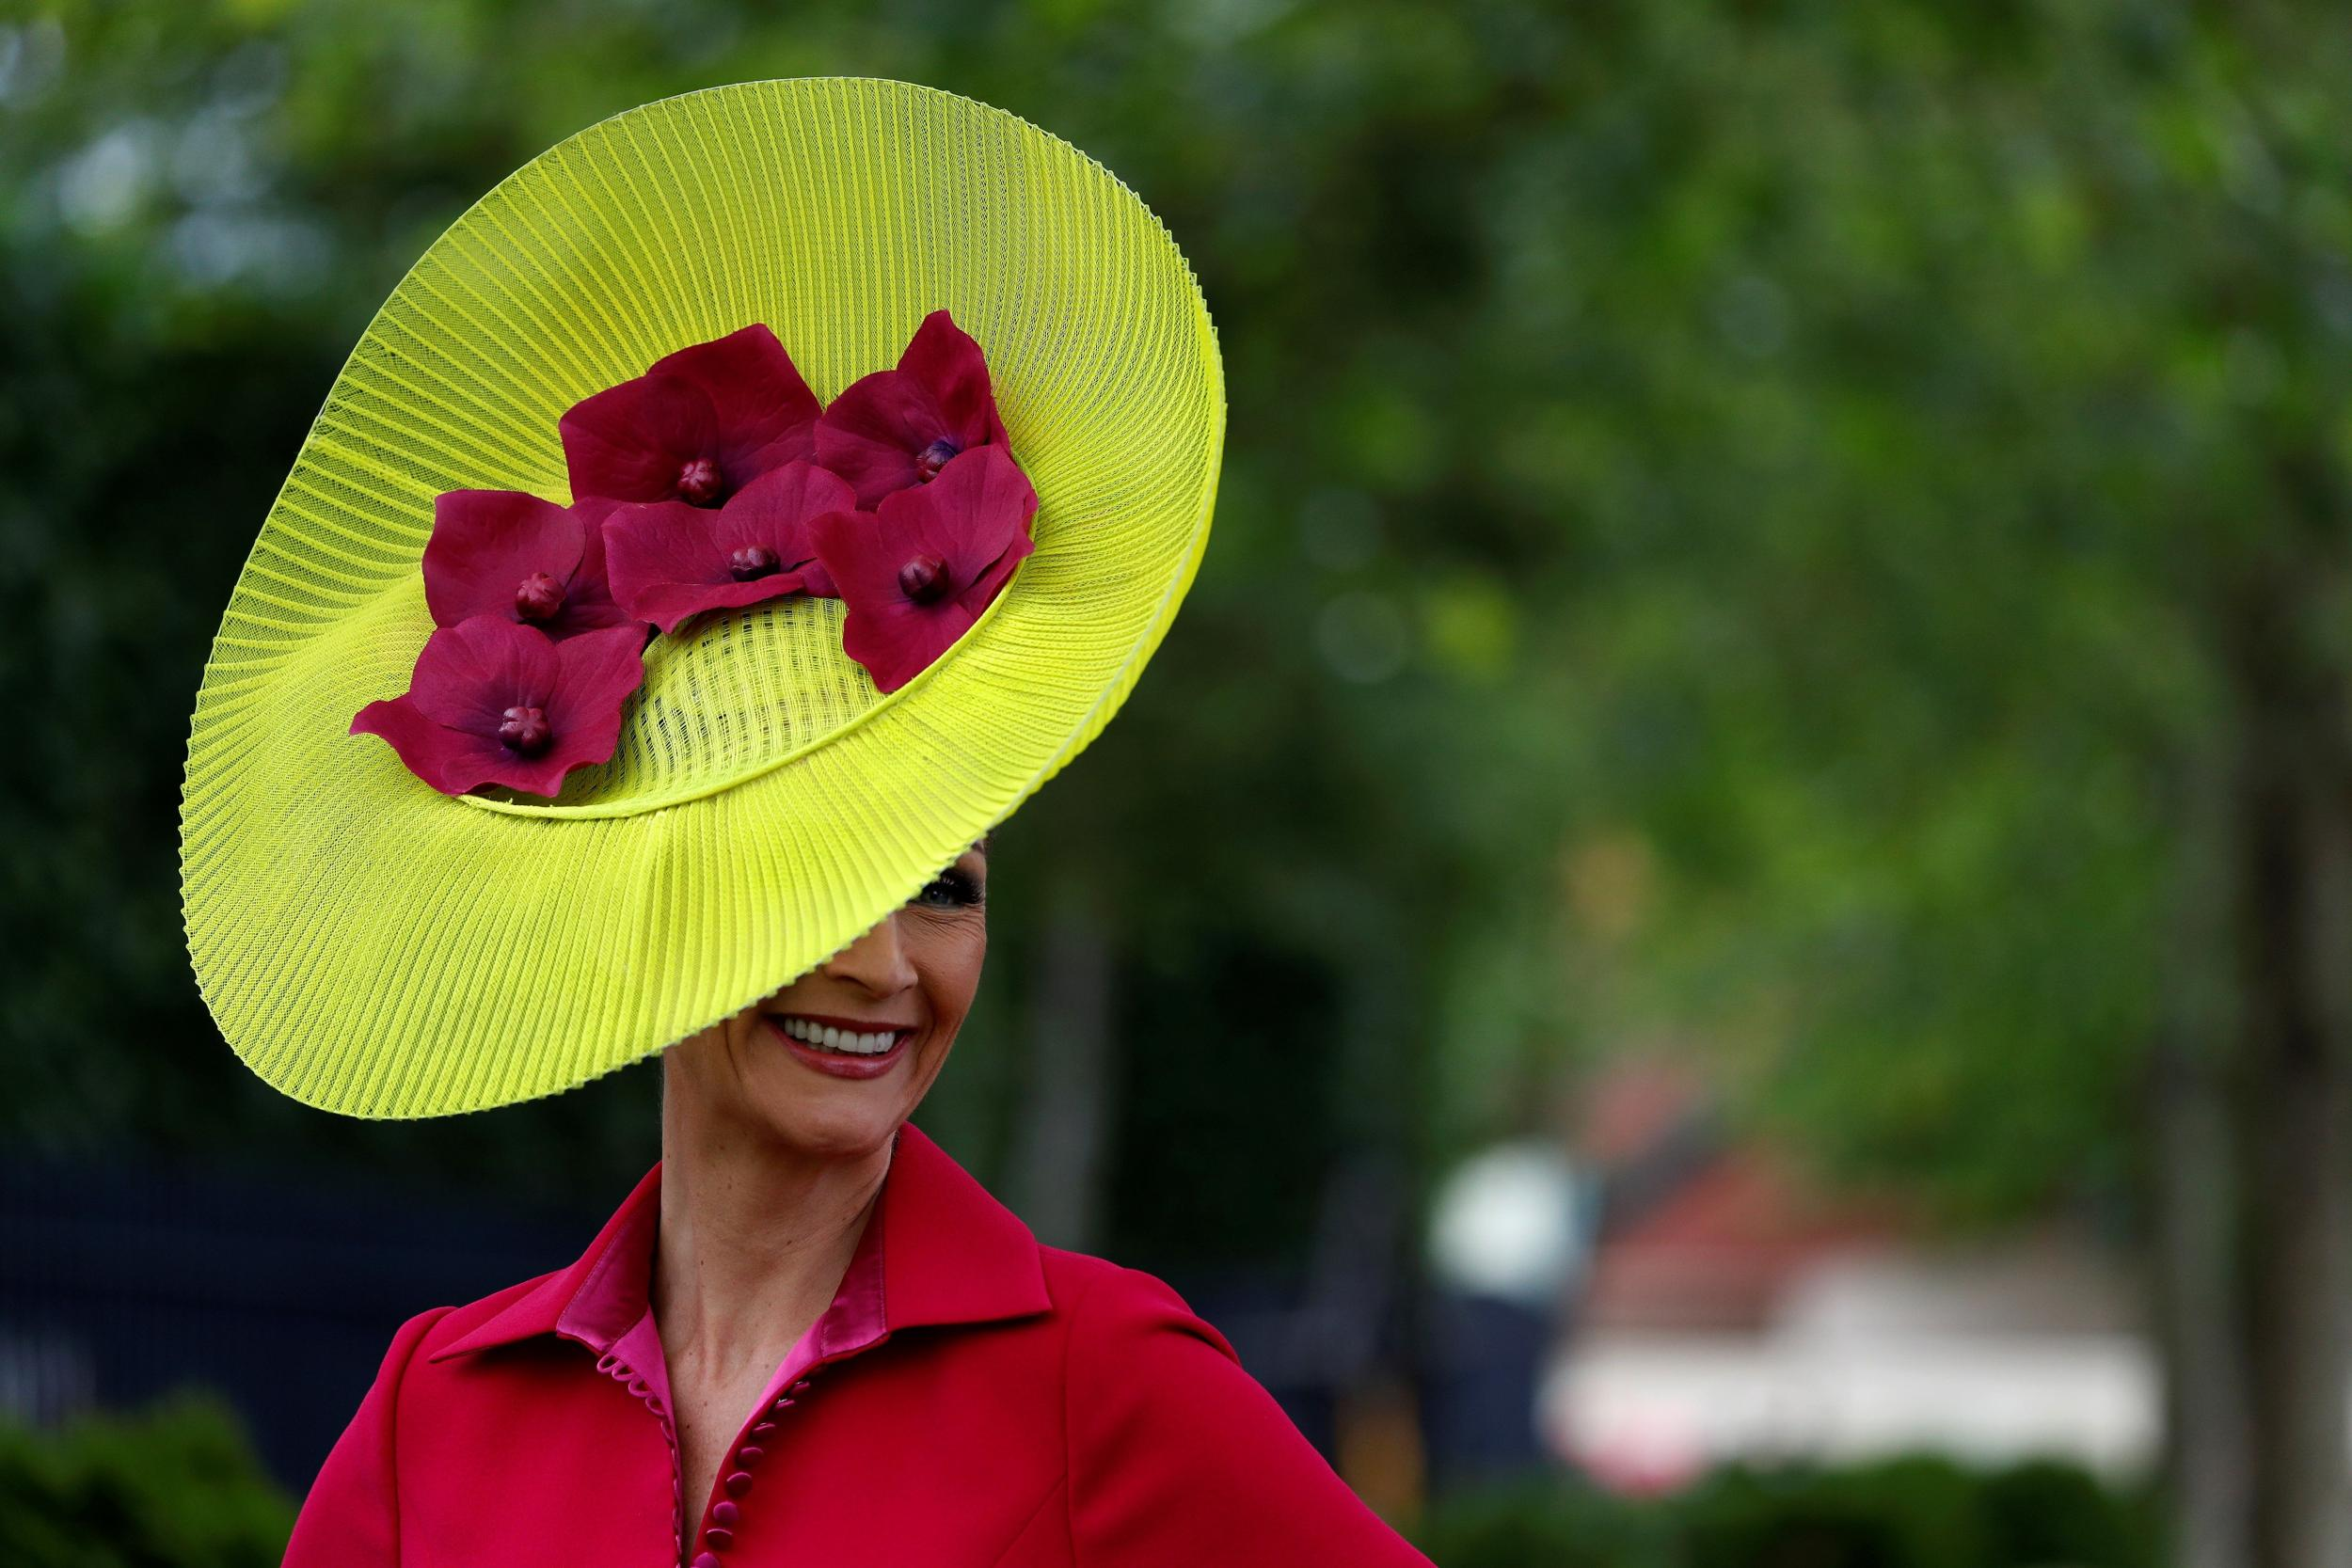 210296b2fe2 Royal Ascot dress code: What to wear at the racing event, according to  experts